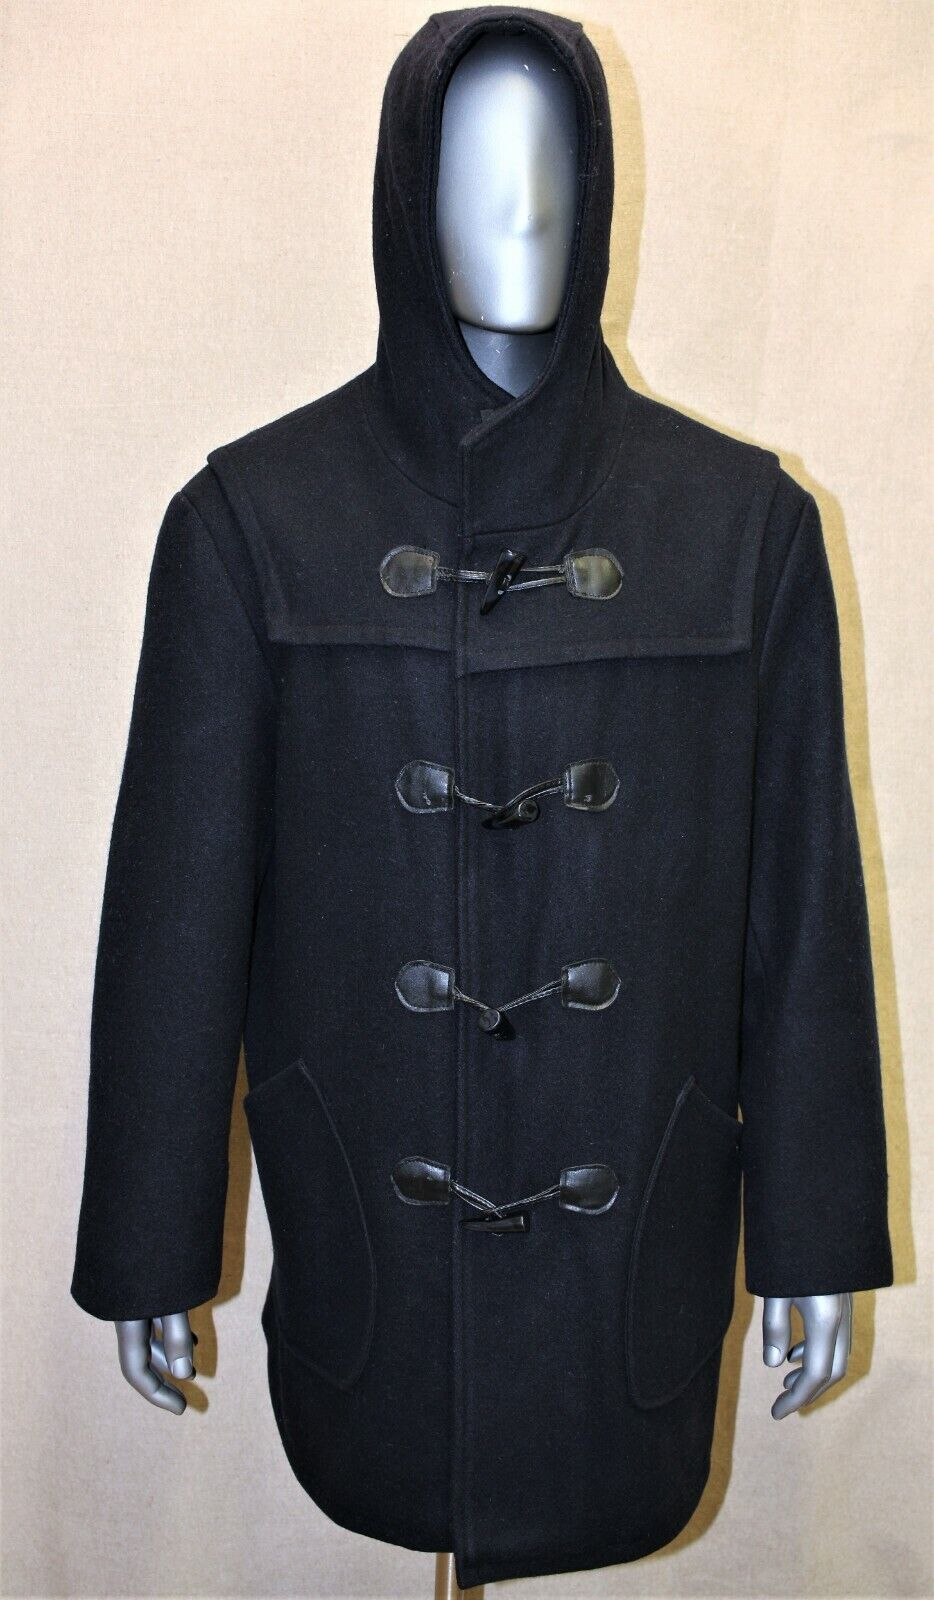 Duffle coat homme schott nyc laine bleu marine taille l 52 eur made in canada